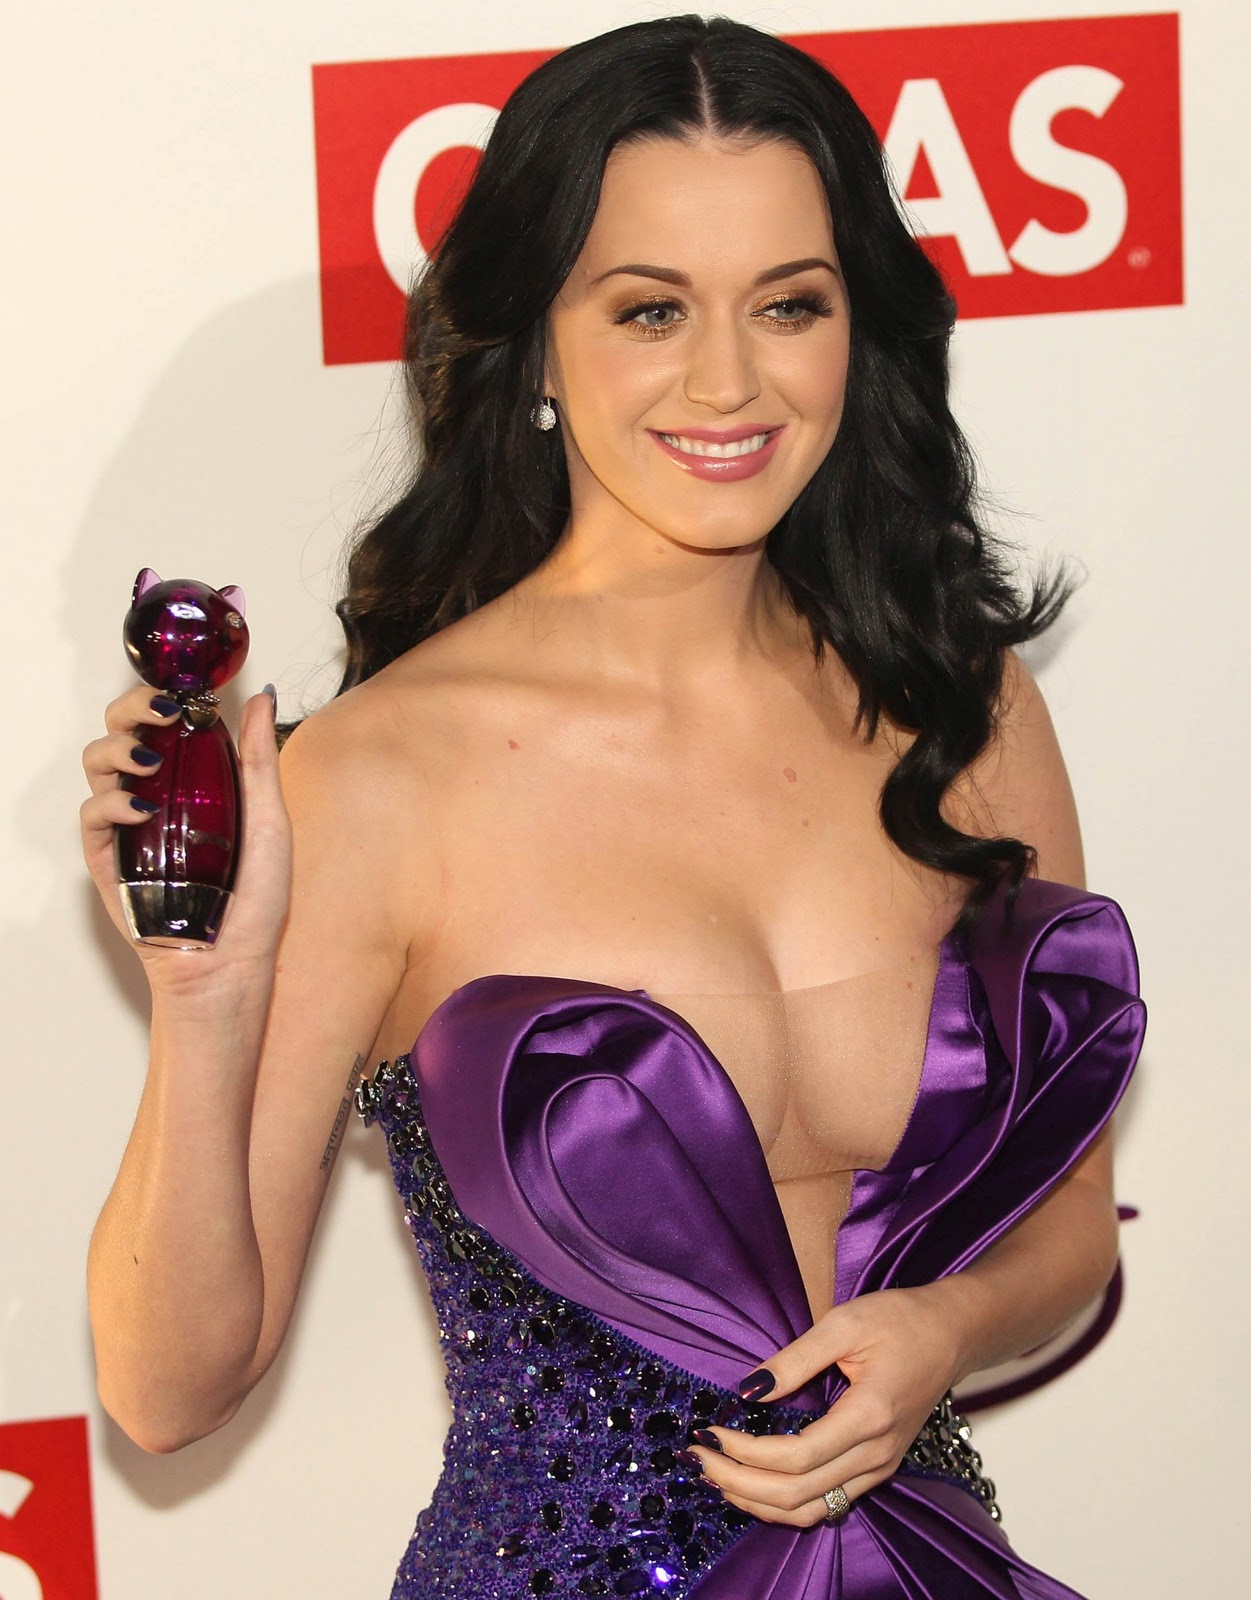 http://3.bp.blogspot.com/_N6m6xa31CEM/TU9_U47sFSI/AAAAAAAADaY/0CZPcWottqM/s1600/Katy+Perry+Hot+cleavage+with+purple+dress.jpg